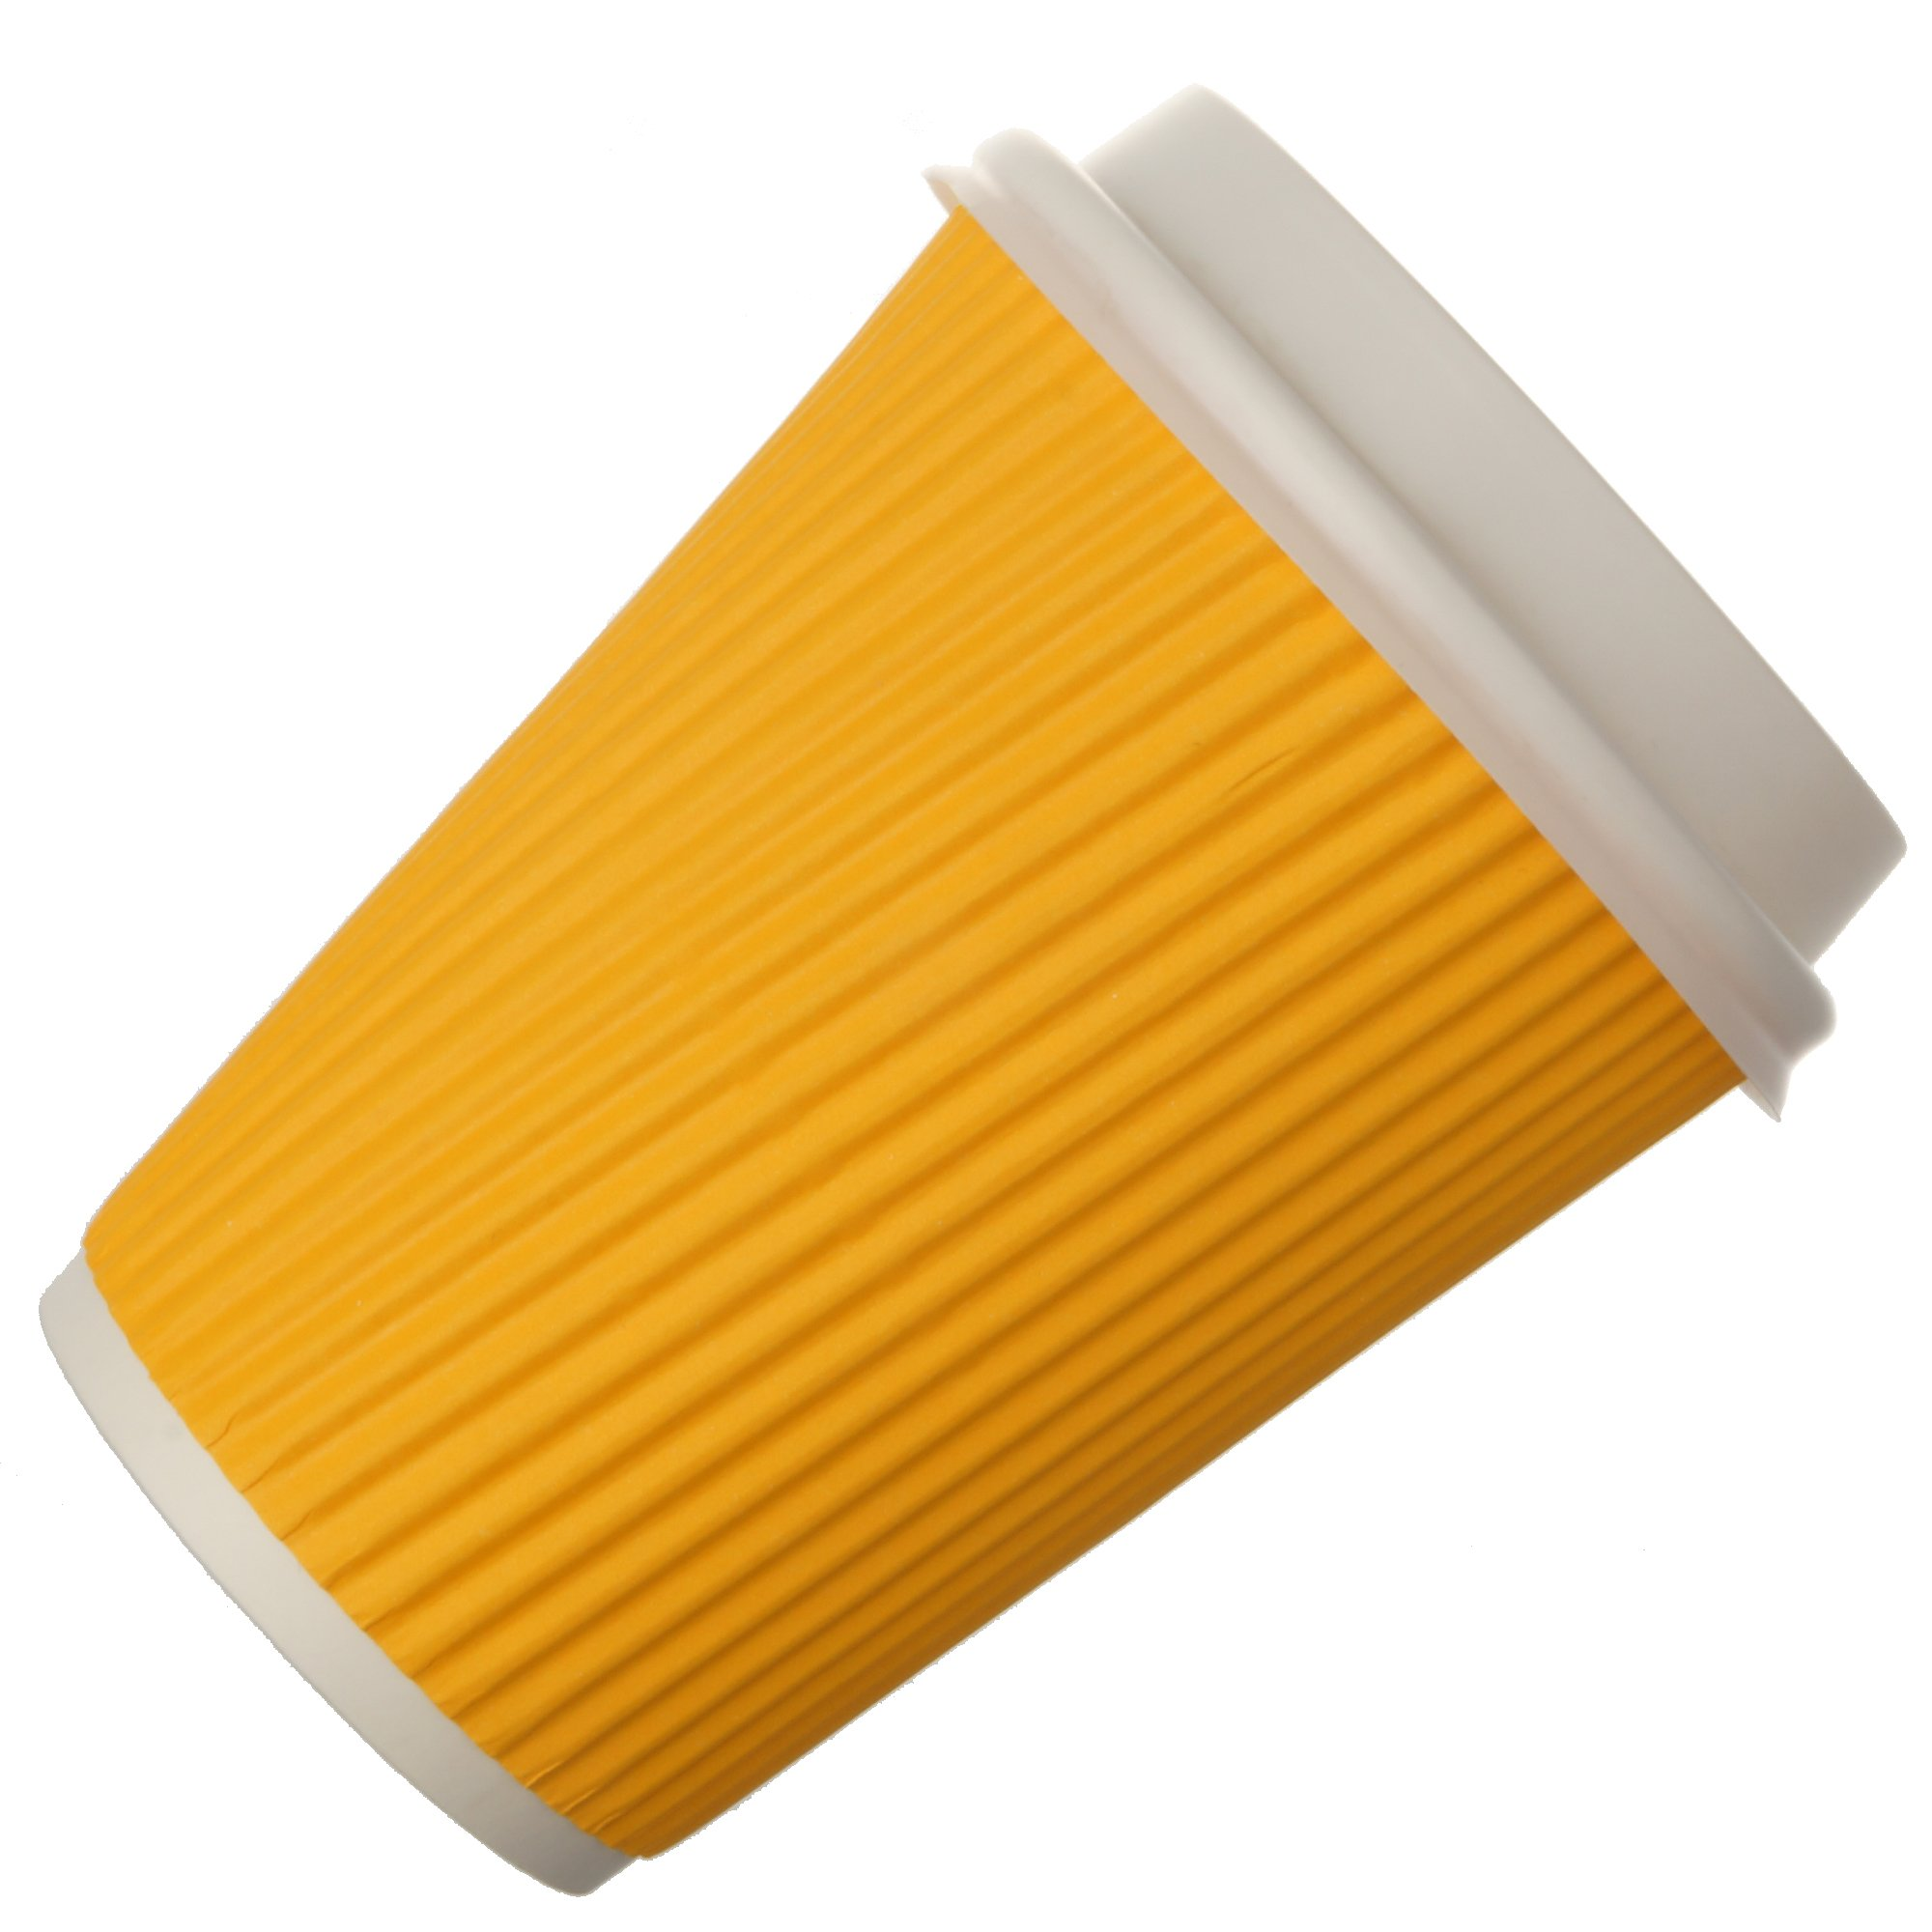 Snapcups Best Disposable Coffee Cups to Go - Premium Hot Paper Cup With Lids 12 Oz, (30 Count), Yellow - Perfect for Ripple and Insulated Cups - No Soaking or Smells - No Sleeves Needed